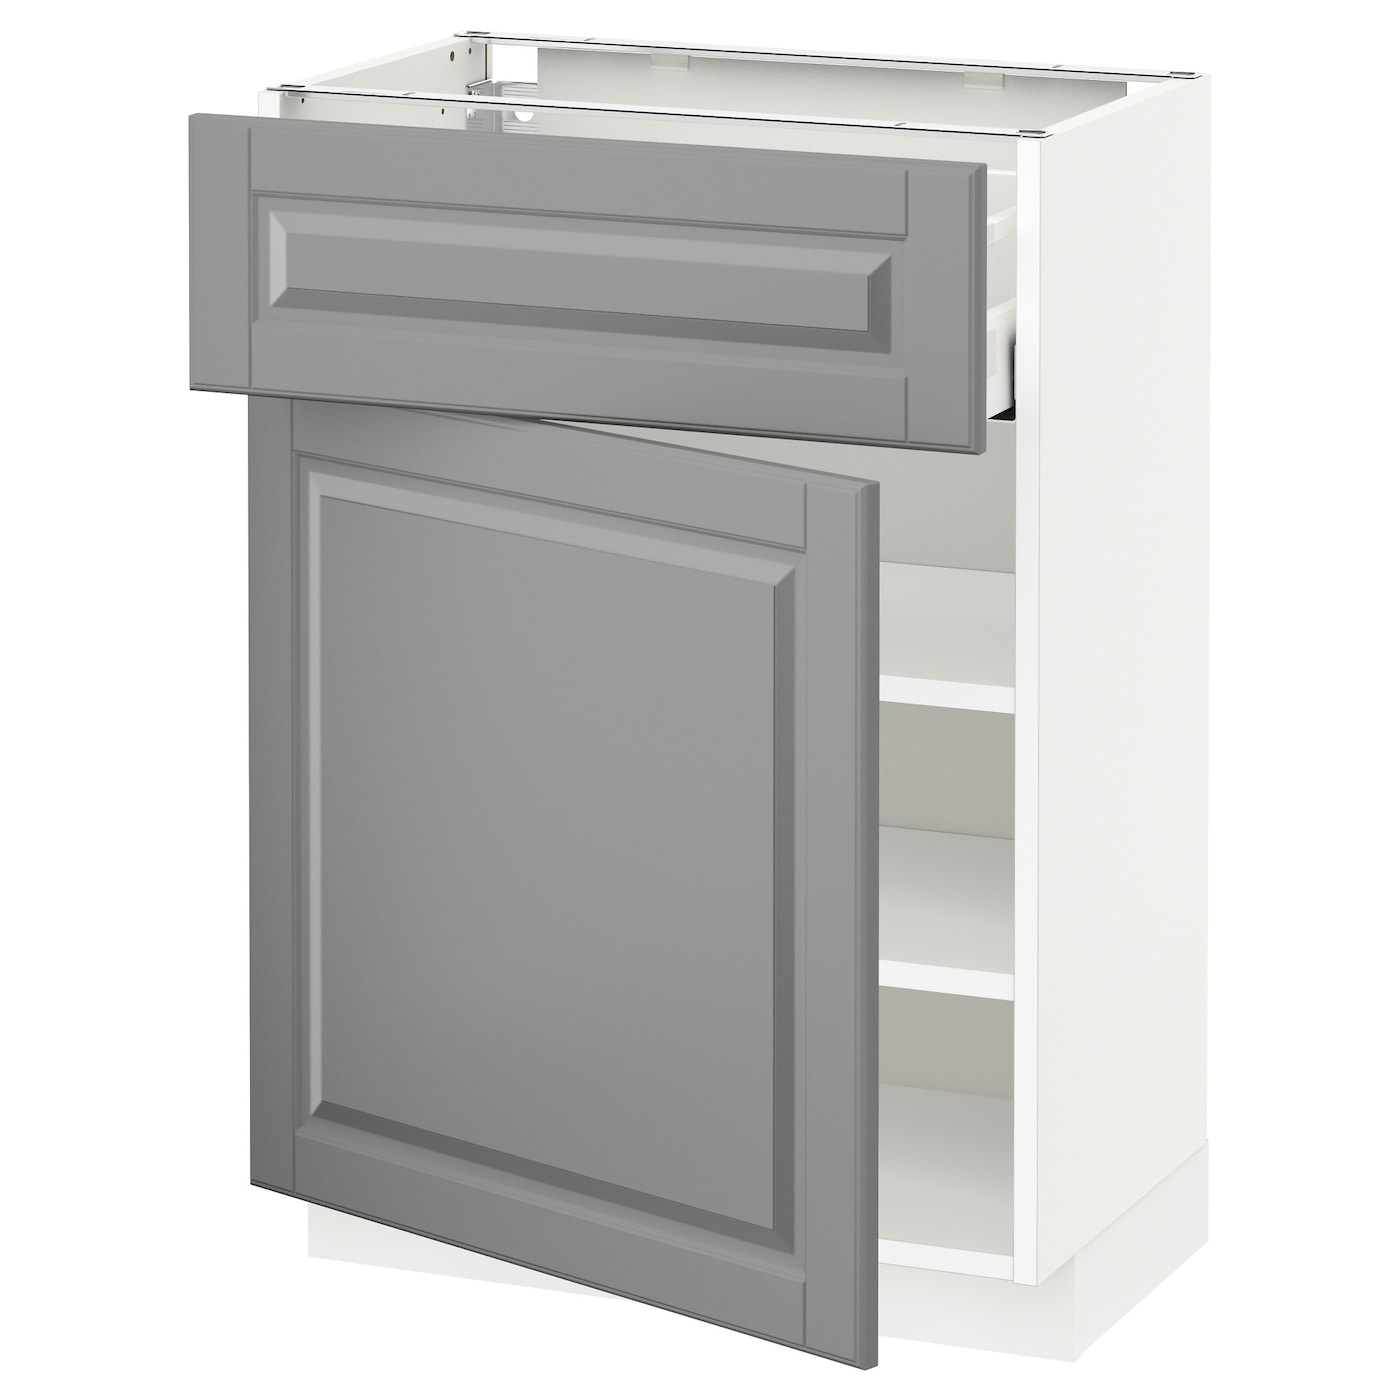 metod maximera base cabinet with drawer door white bodbyn grey 60 x 37 cm ikea. Black Bedroom Furniture Sets. Home Design Ideas